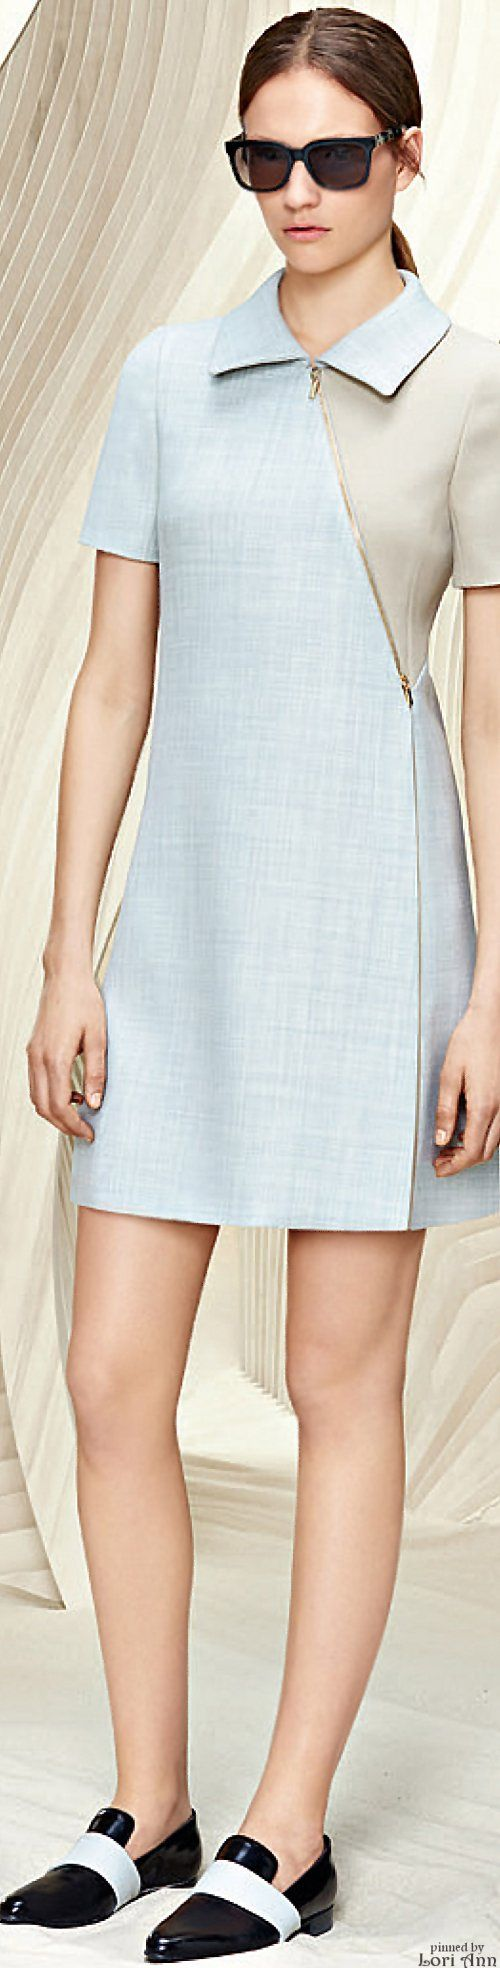 Boss ~ Resort Pale Blue Asymmetrical Dress 2016.  With a slightly longer hemline